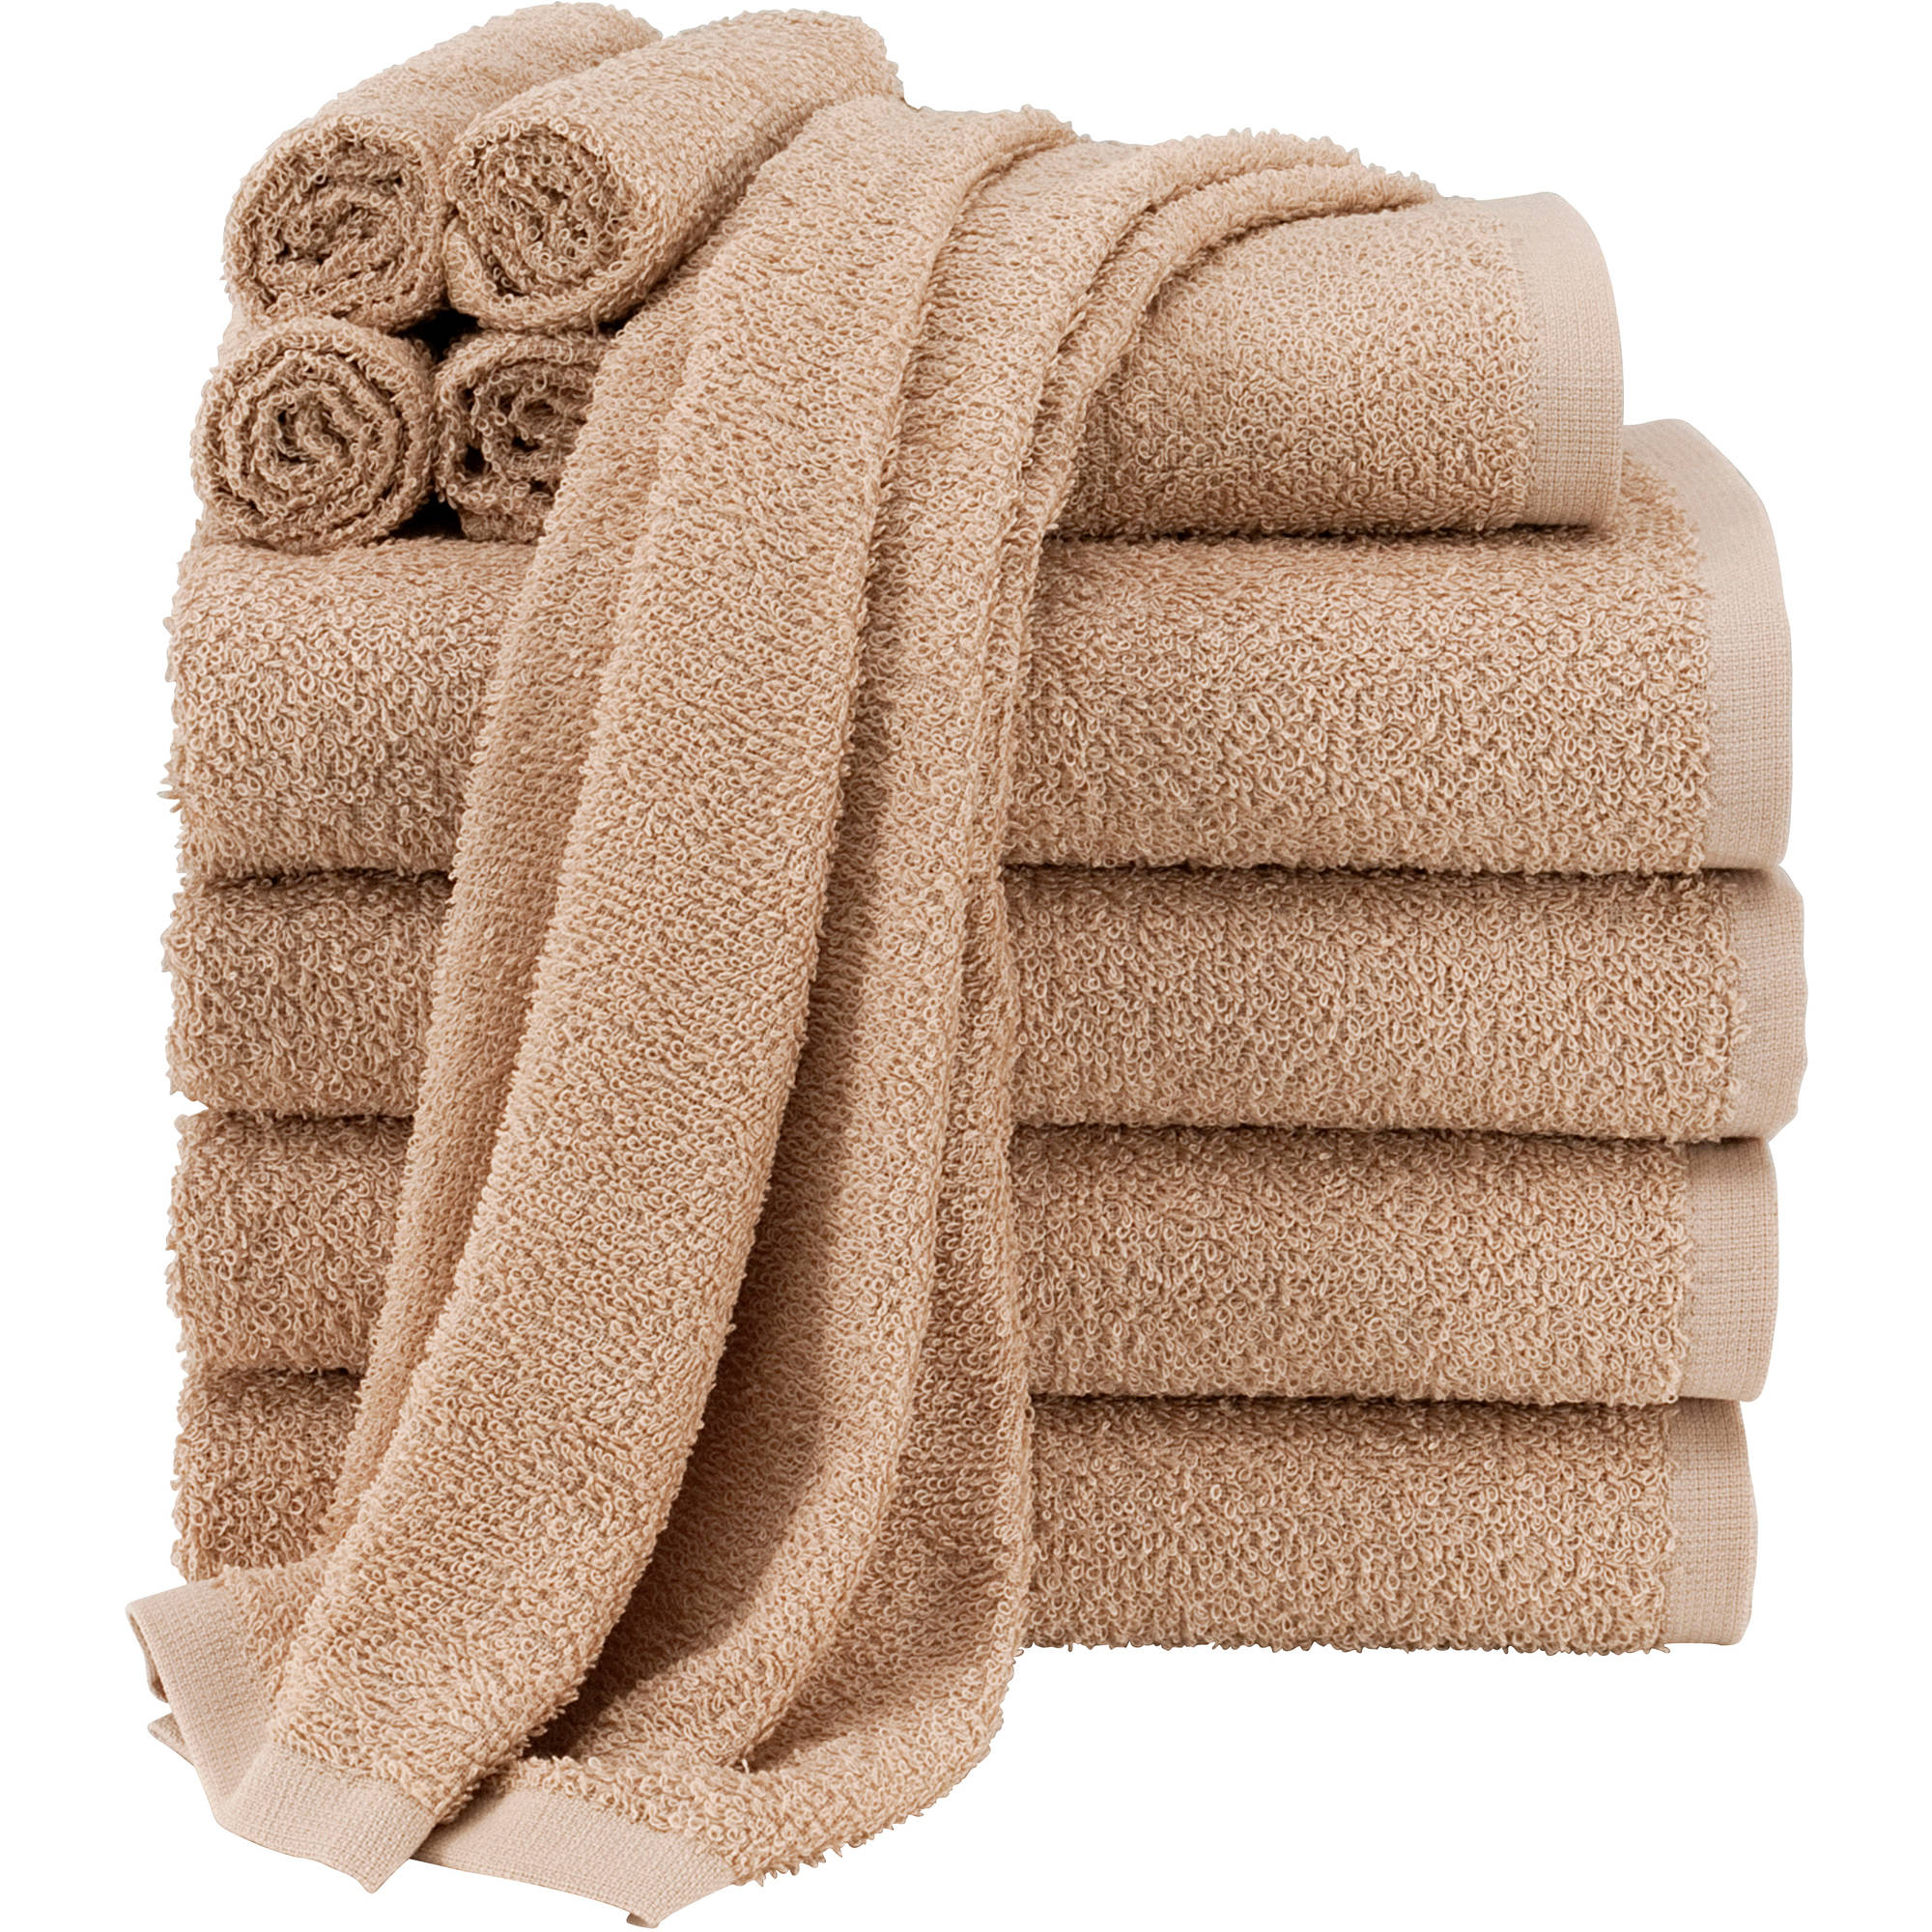 Aaron kitchen bath design gallery - Mainstays Value 10 Piece Towel Set